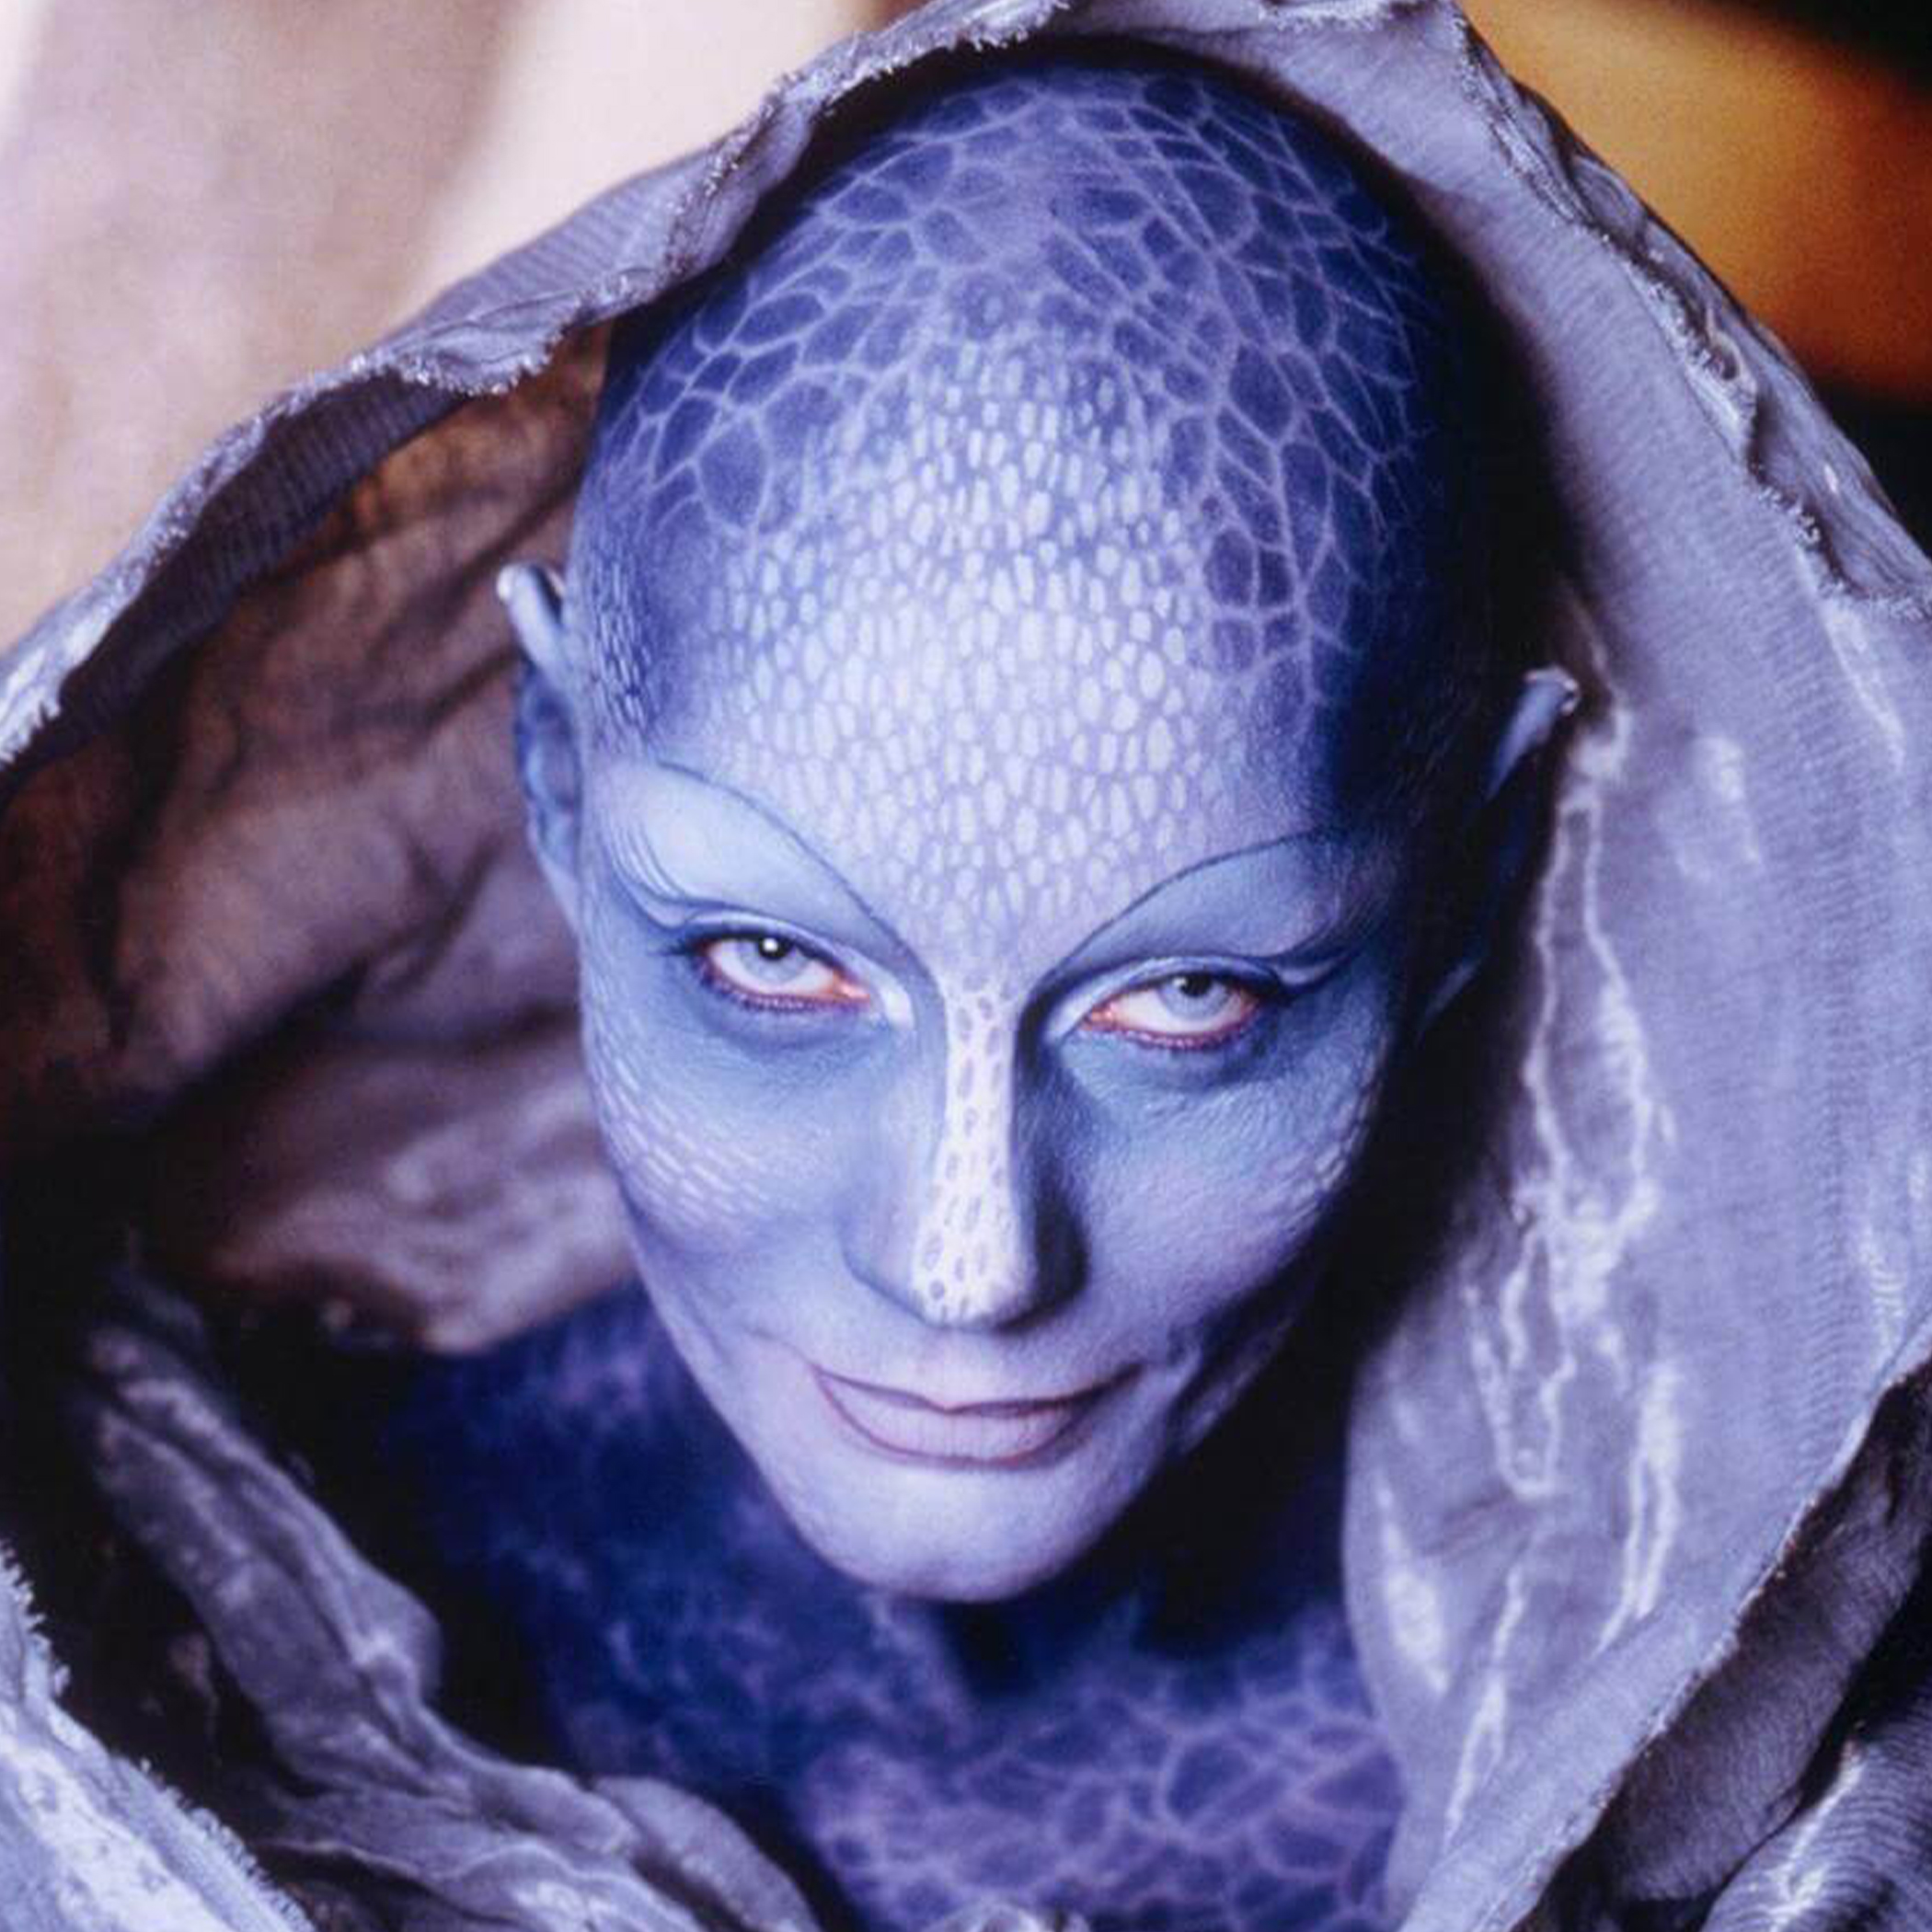 Pa'u Zotoh Zhaan, from the Farscape series.